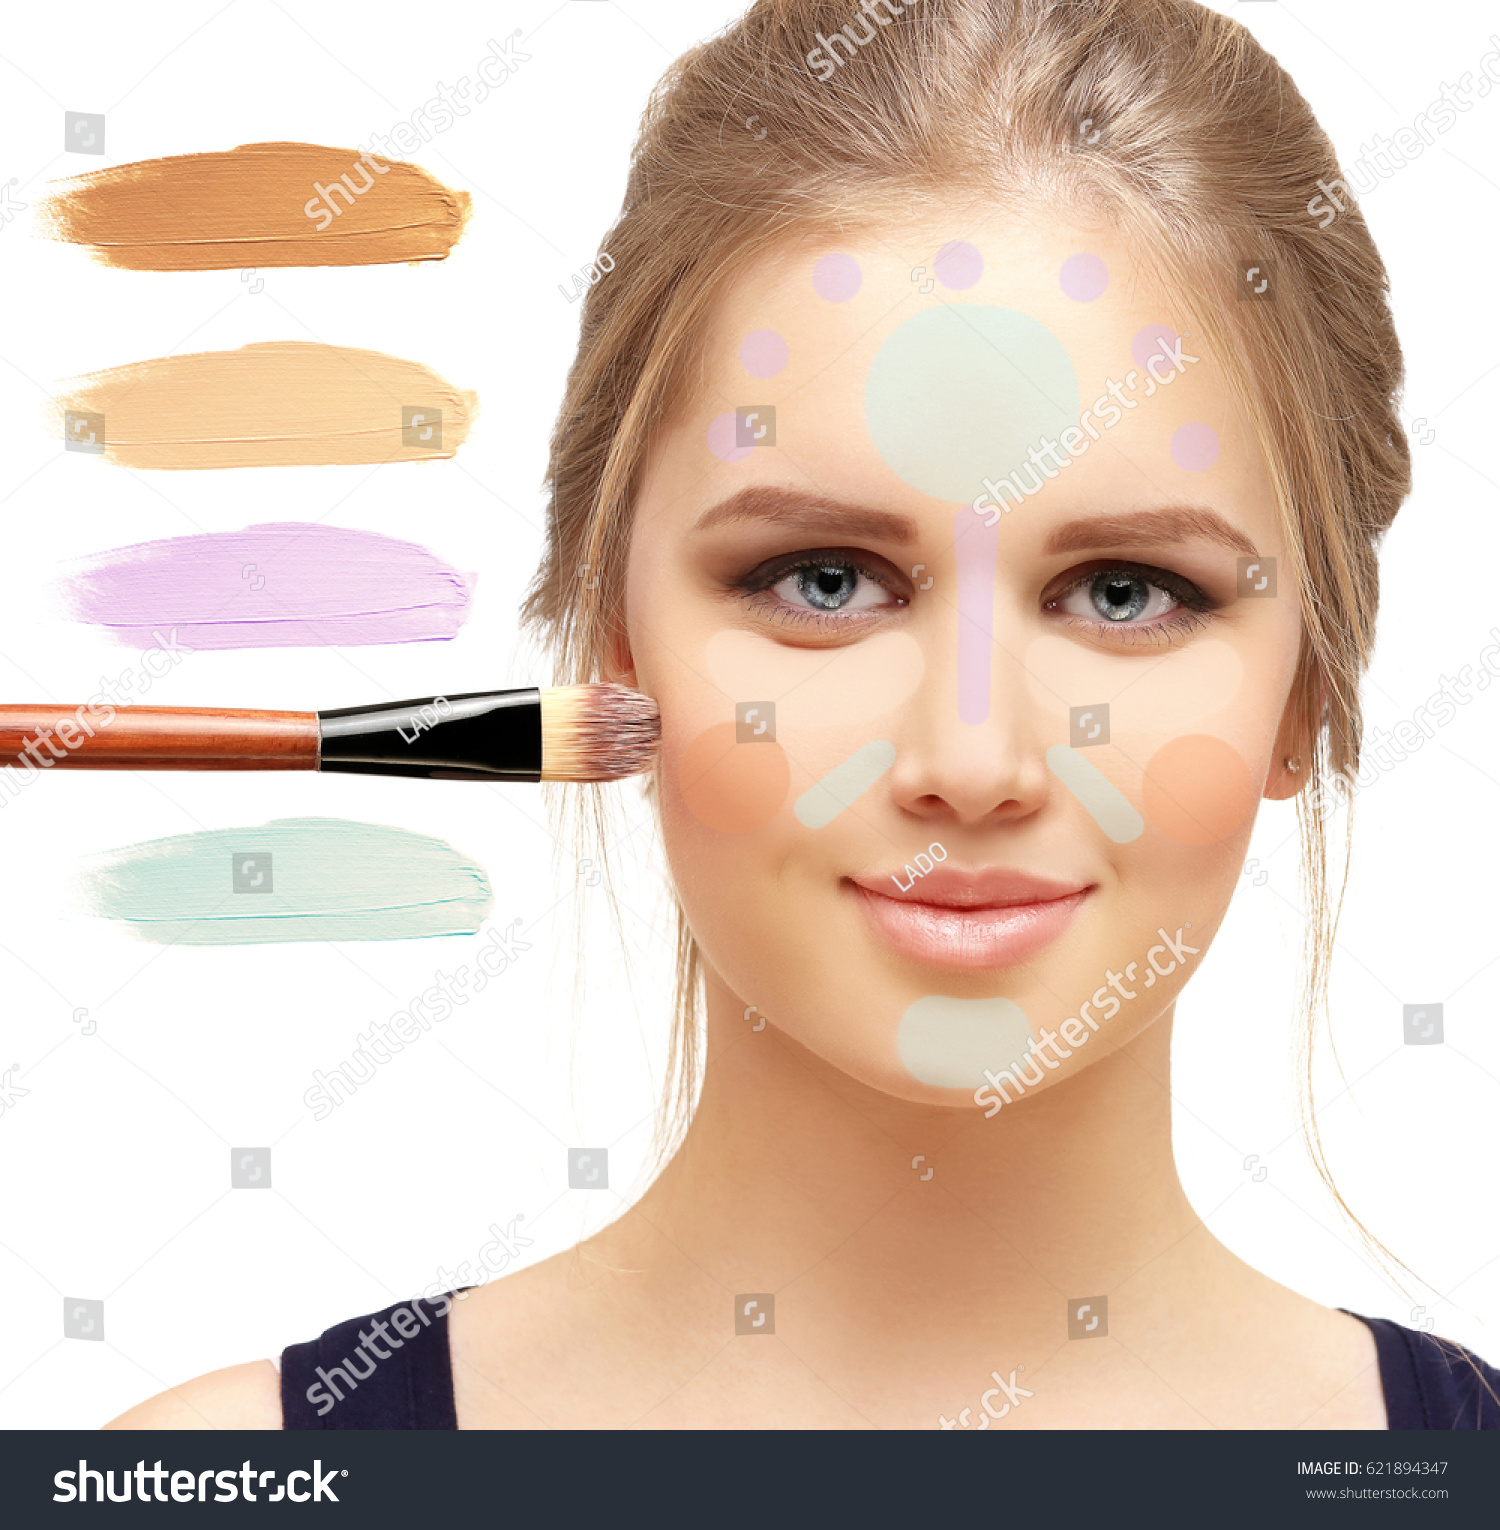 Foundation Concealer Contouring Make Woman Face Stock Photo Edit Overage And A Contouringmake Up